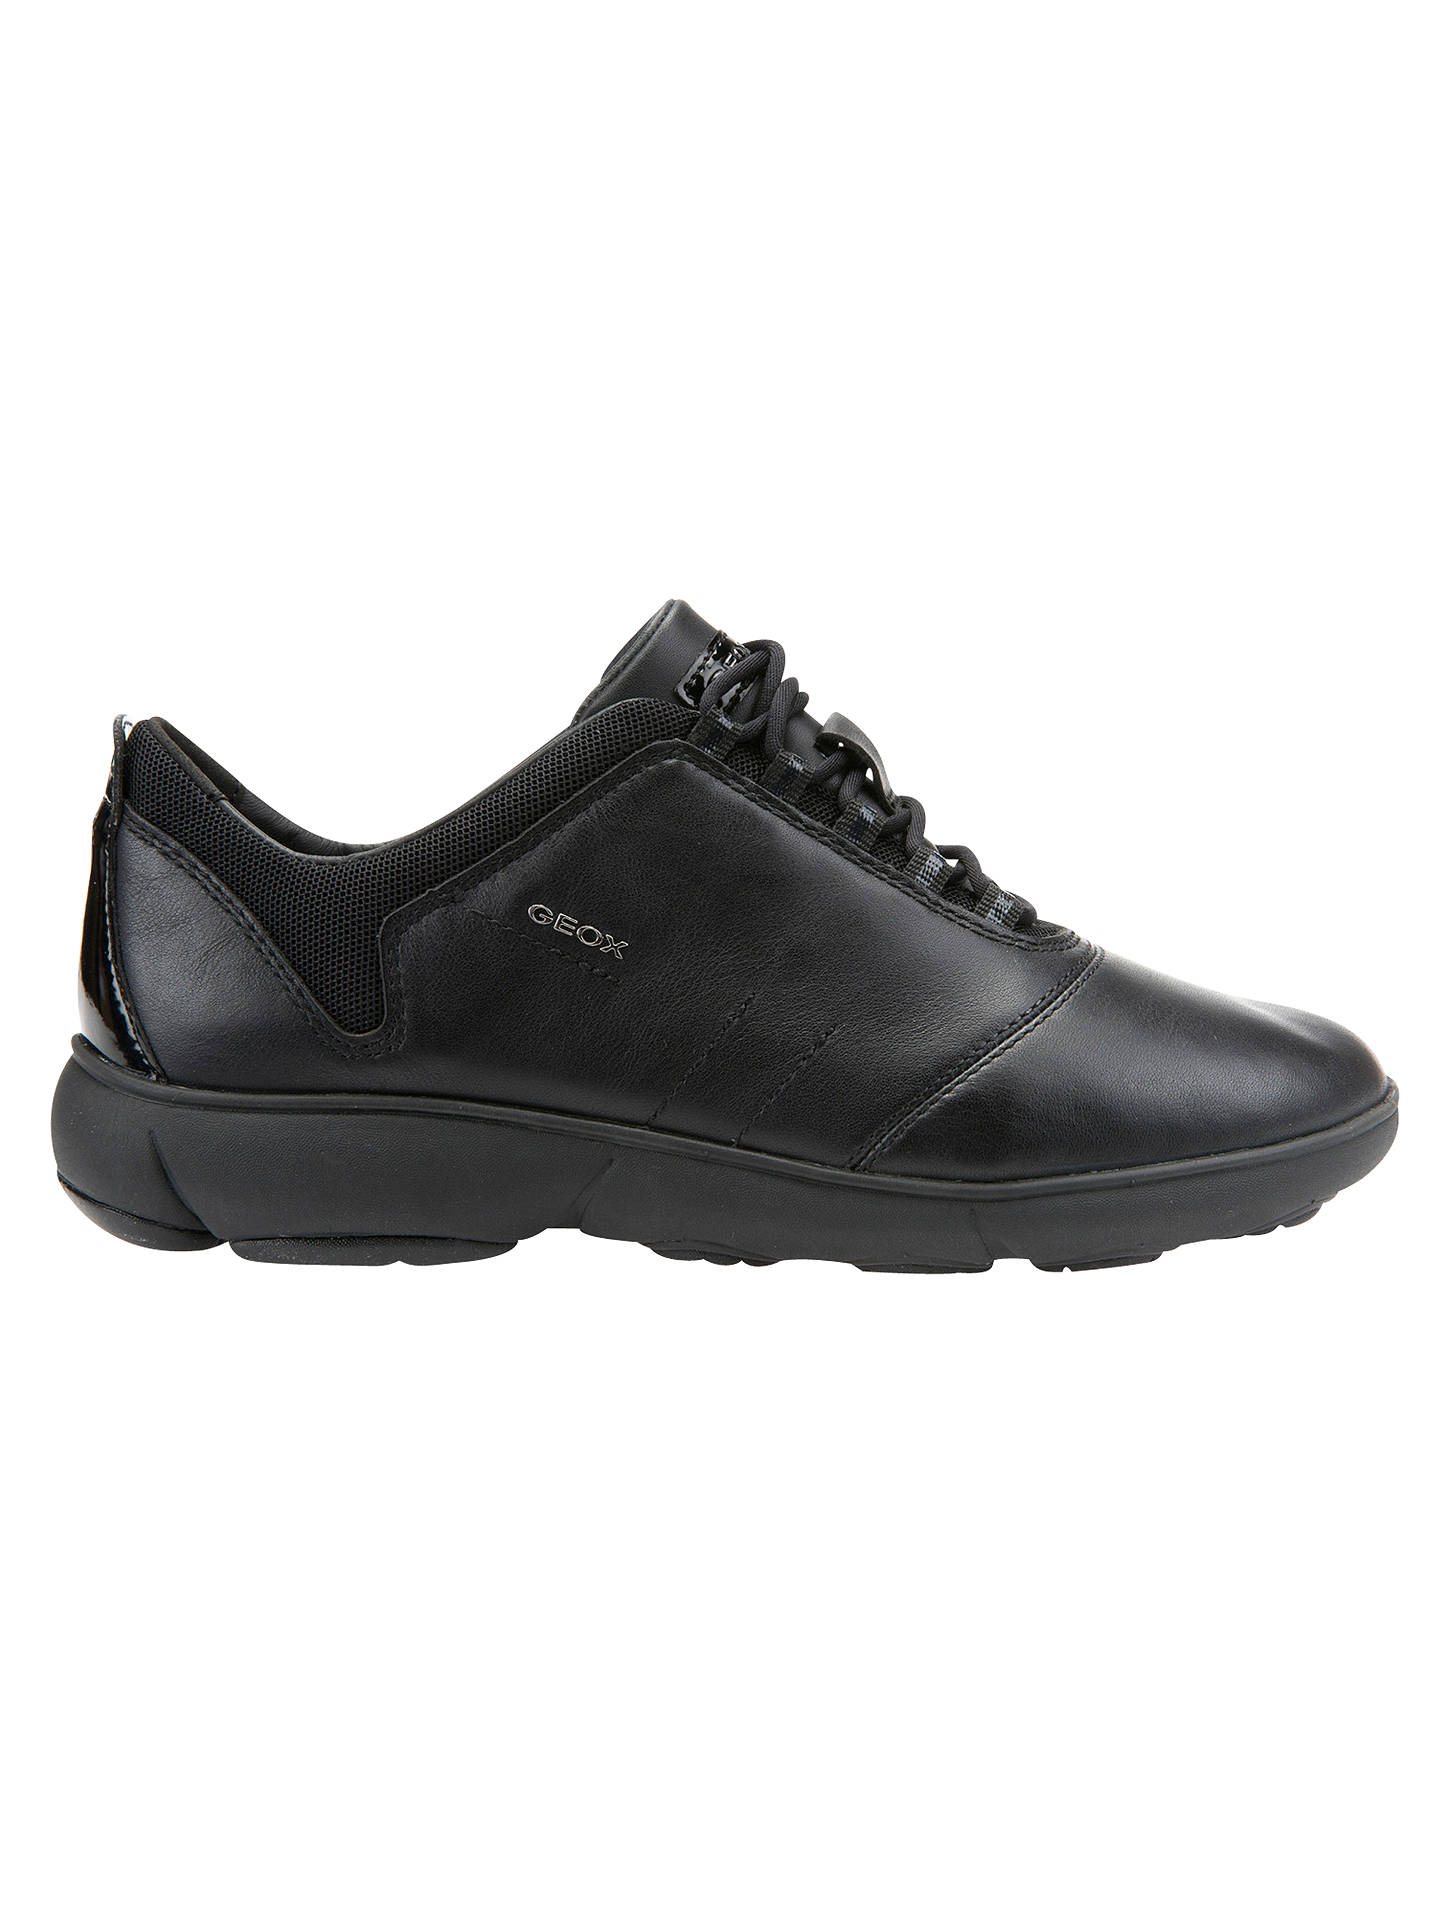 5c4345701a Buy Geox Women's Nebula Trainers, Black, 4 Online at johnlewis. ...